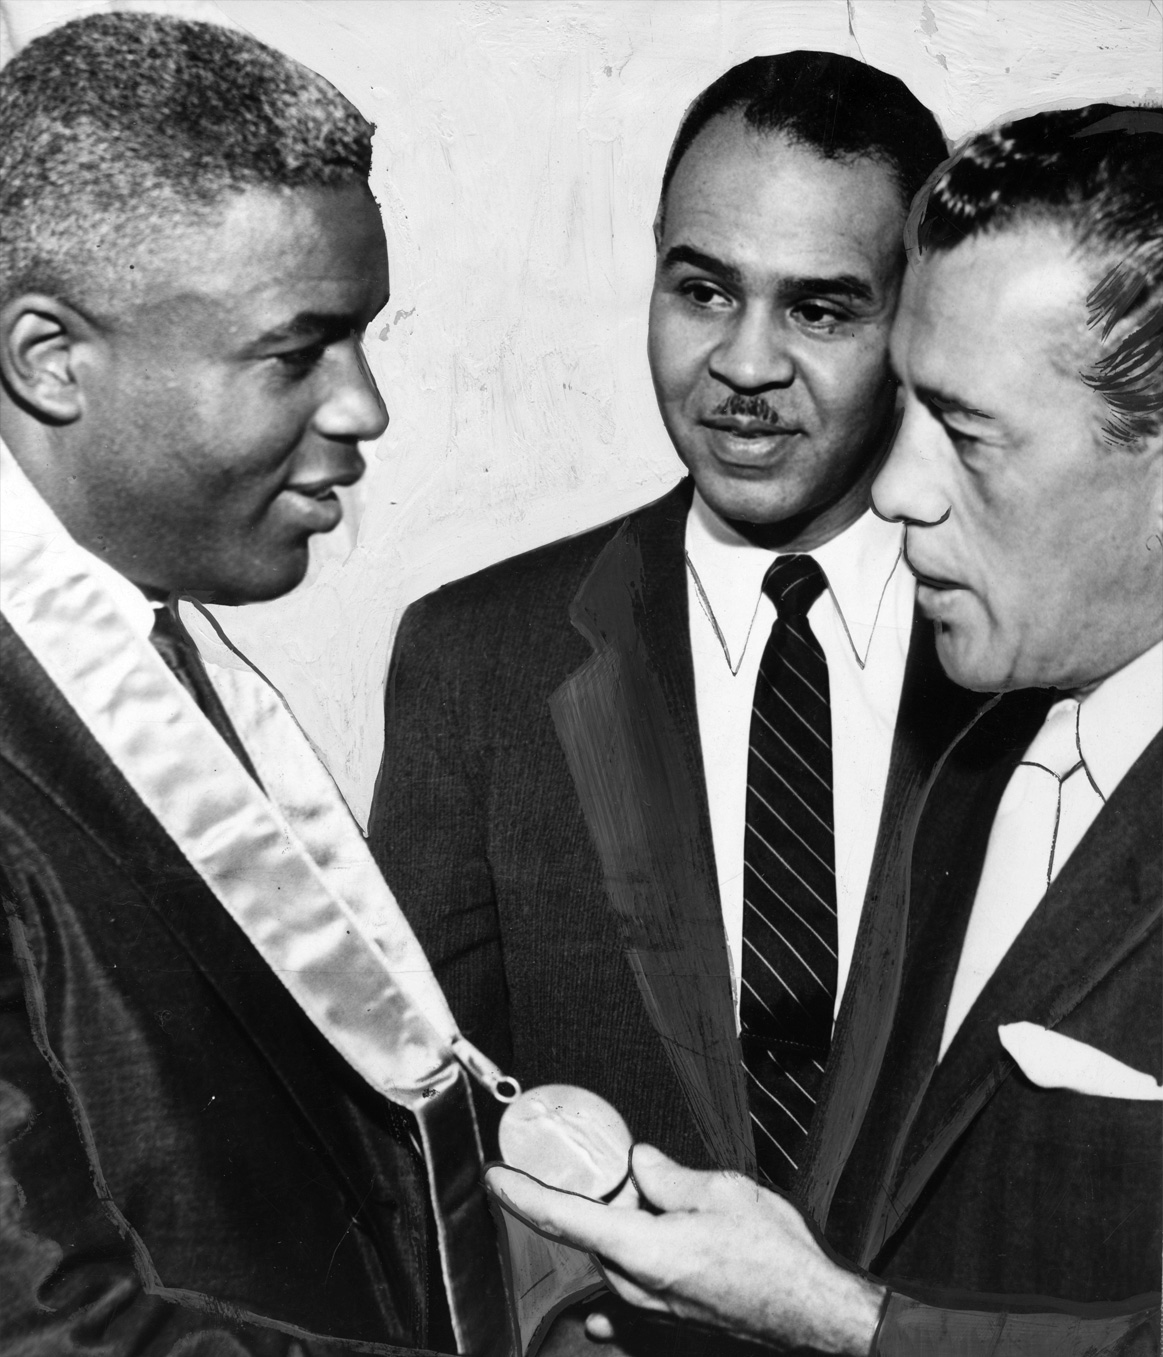 Jackie Robinson receives the NAACP Spingarn Medal from Roy Wilkins (center) and Ed Sullivan (right), 1956. The medal will be among the artifacts on display in the museum.  Getty Images